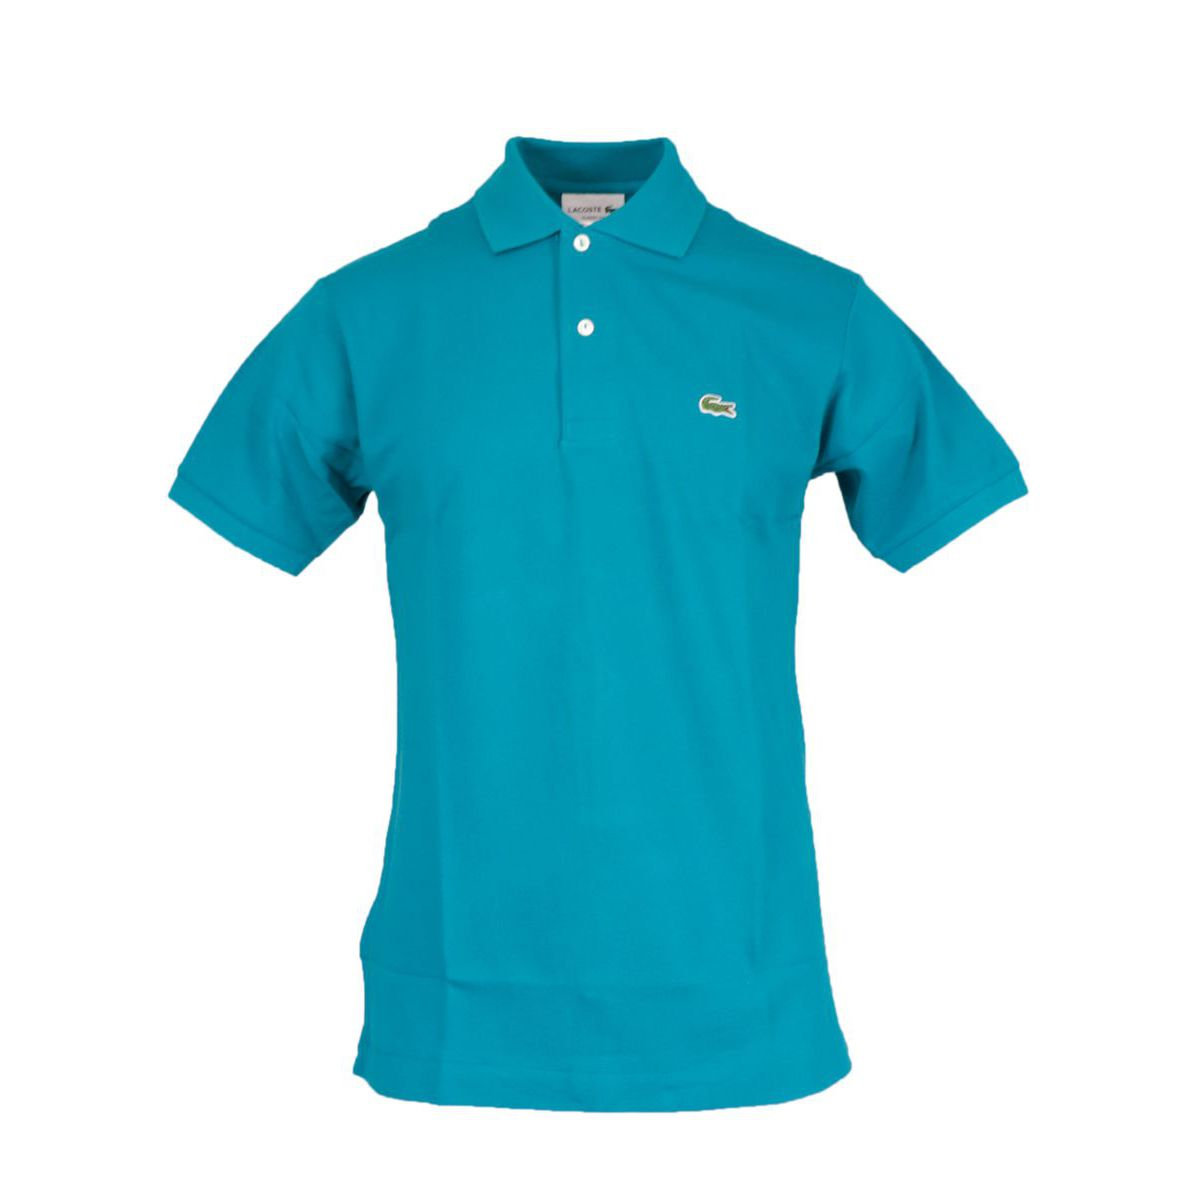 Classic fit 2 button cotton polo Teal Lacoste